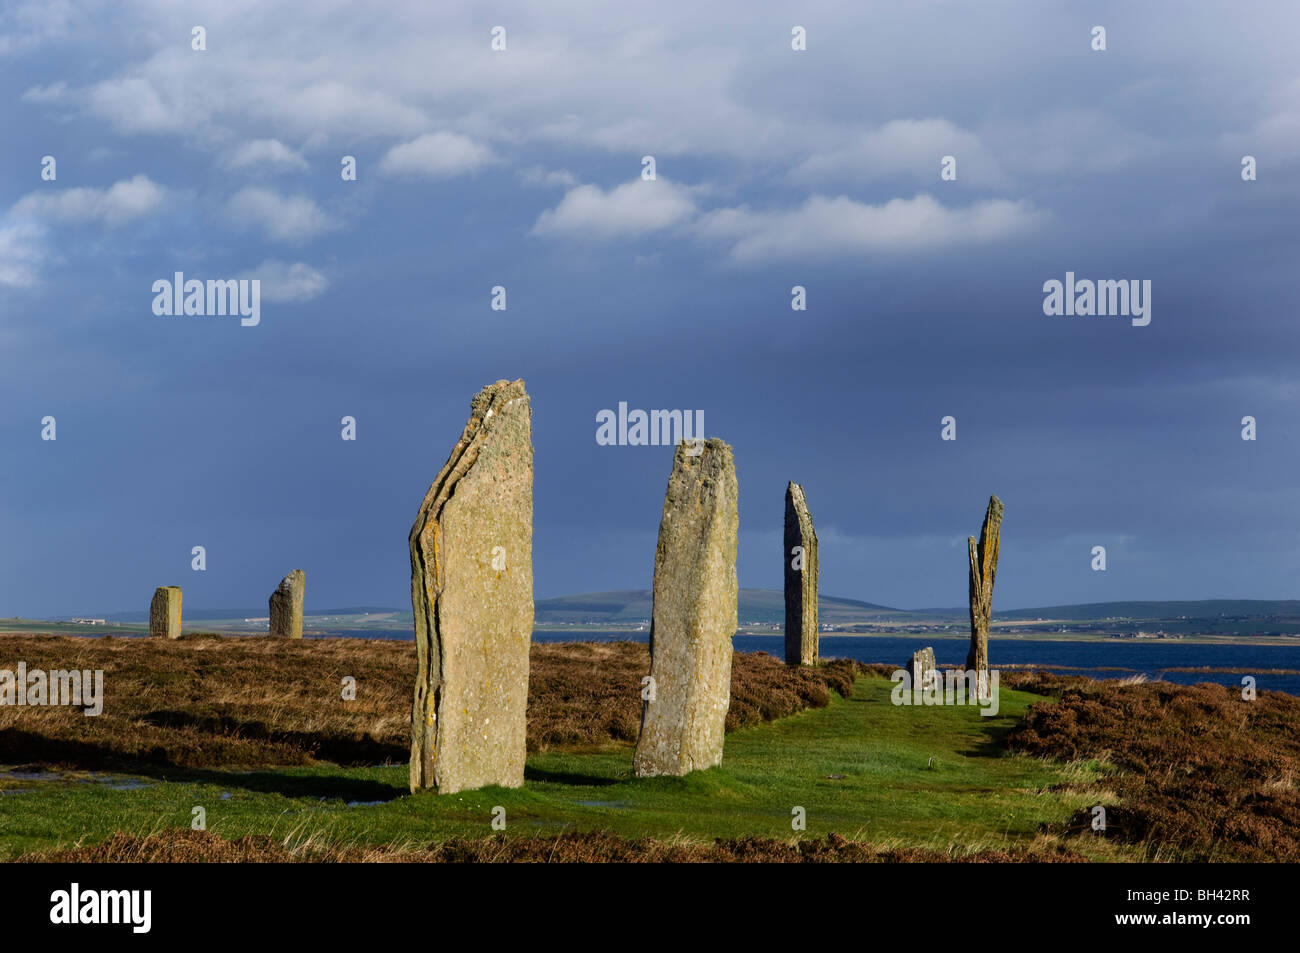 Ring of Brodgar, Orkney Islands - Stock Image